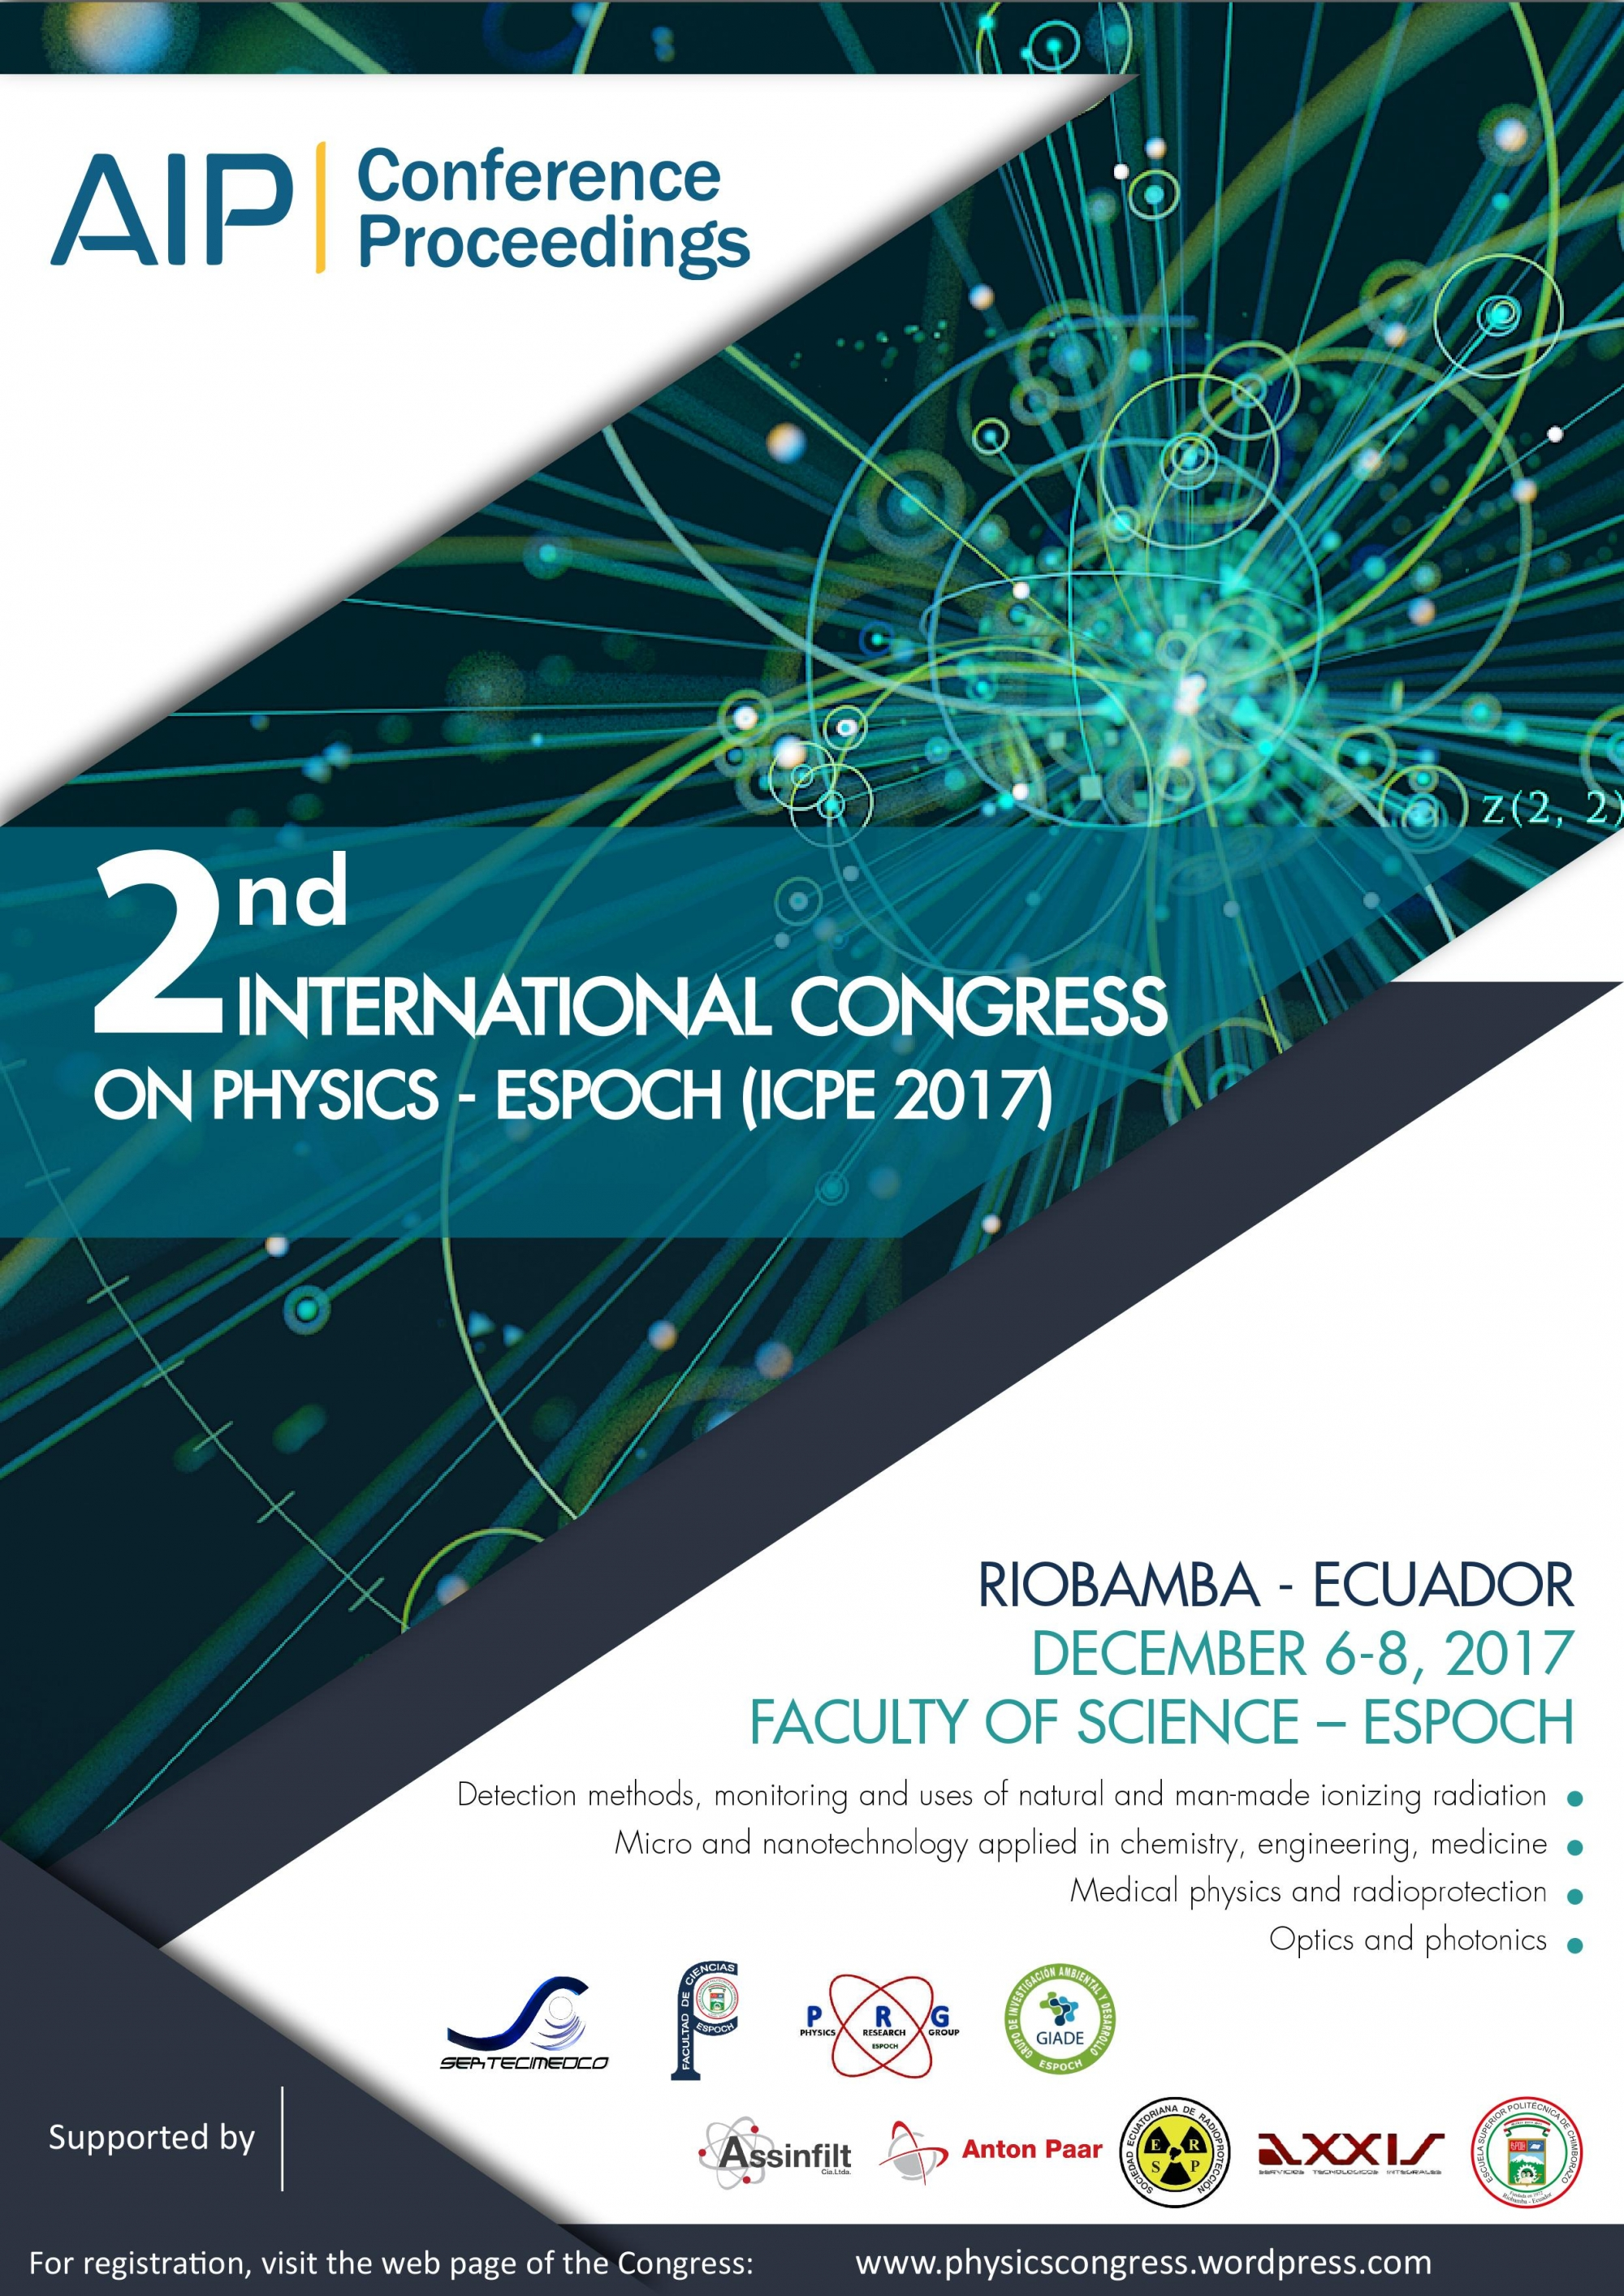 2ND INTERNATIONAL CONGRESS ON PHYSICS - ESPOCH (ICPE 2017)